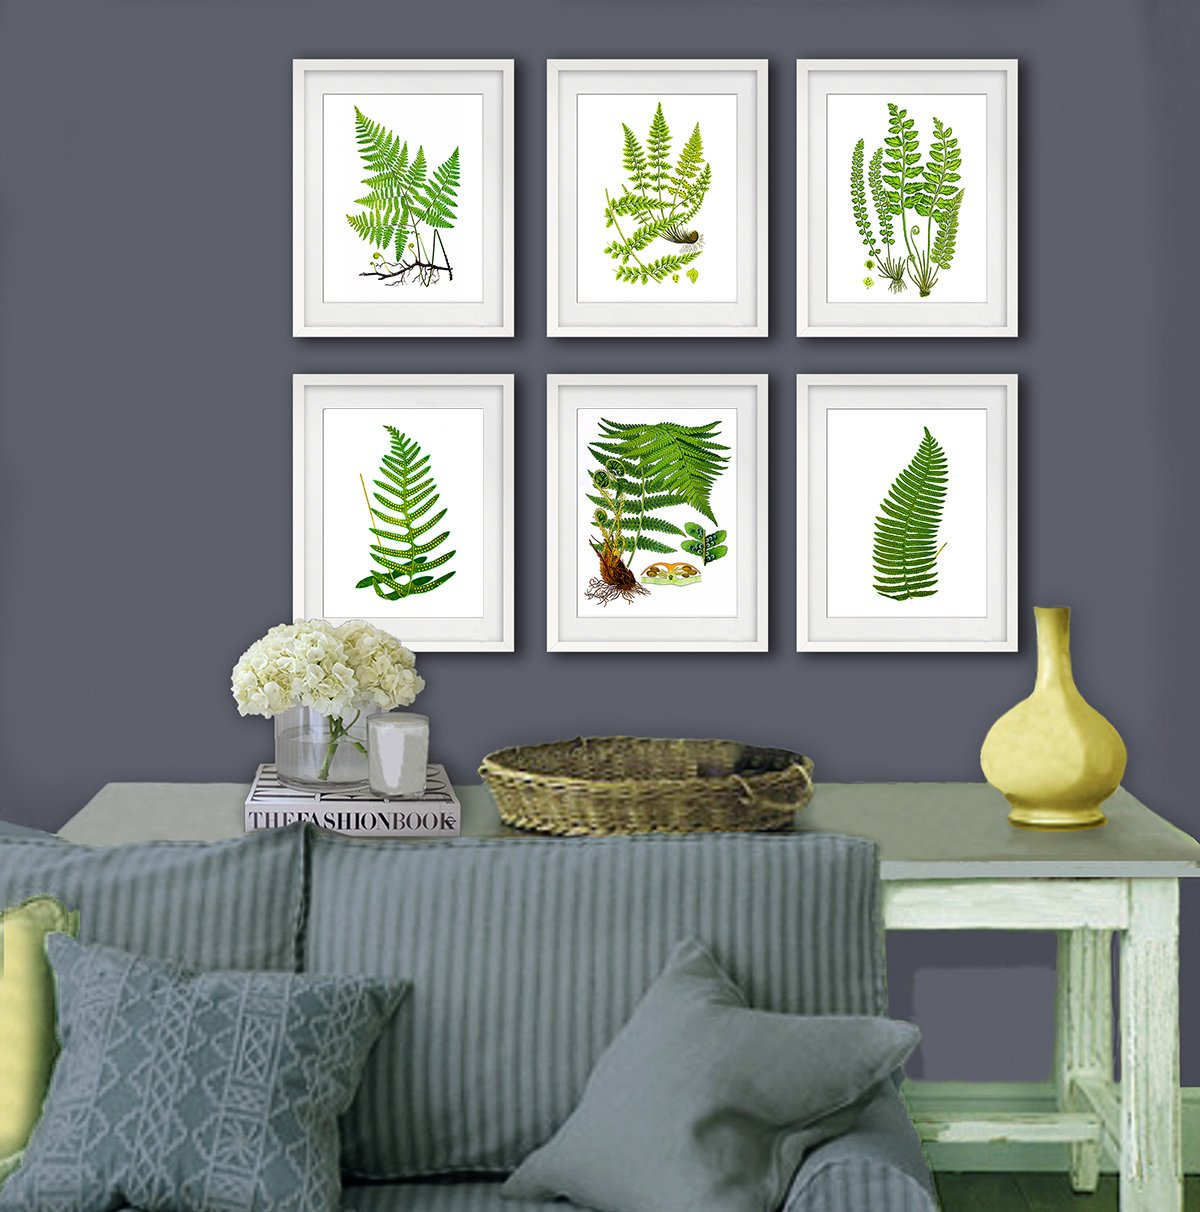 Amazon.com Fern Botanical Wall Art Unframed Set of 6 Home Decor Art Prints Posters u0026 Prints & Amazon.com: Fern Botanical Wall Art Unframed Set of 6 Home Decor Art ...